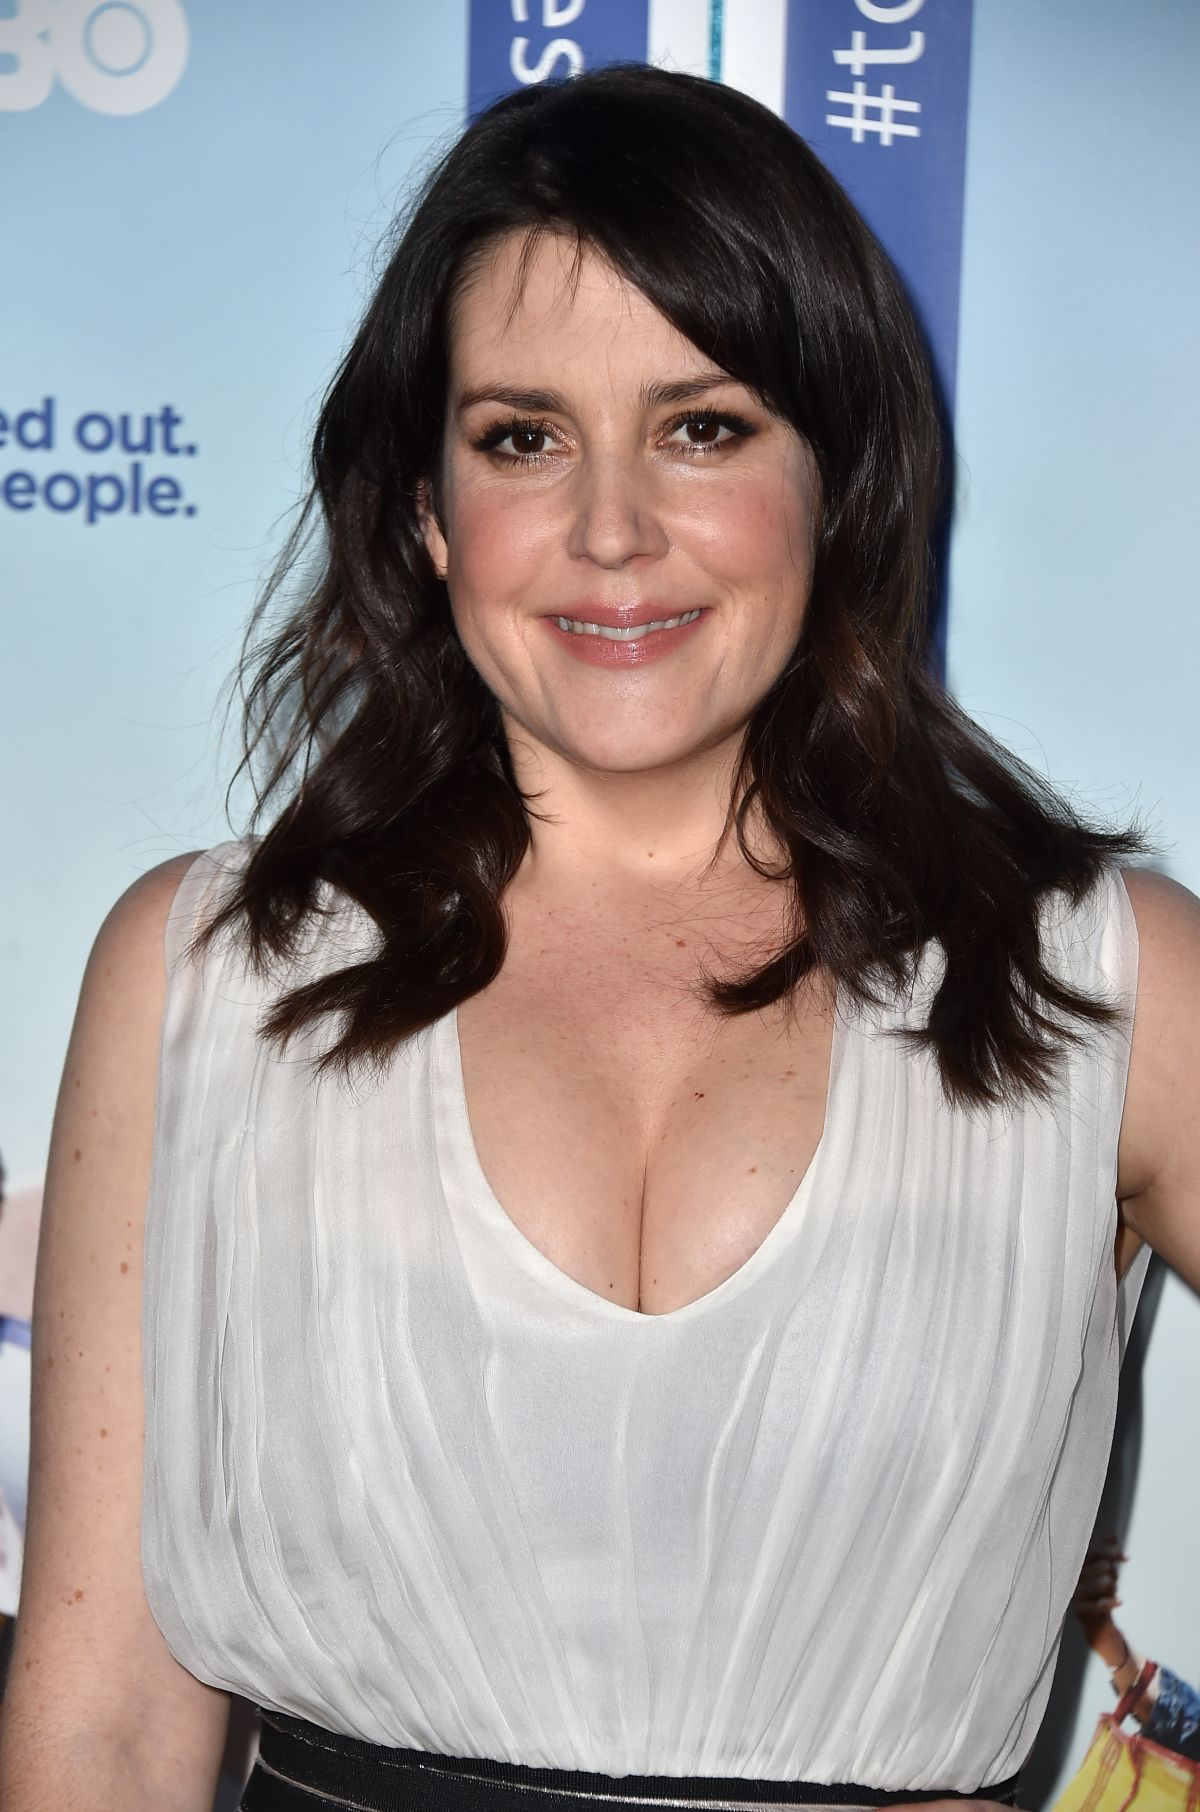 Video Melanie Lynskey nudes (74 photos), Ass, Bikini, Twitter, bra 2017